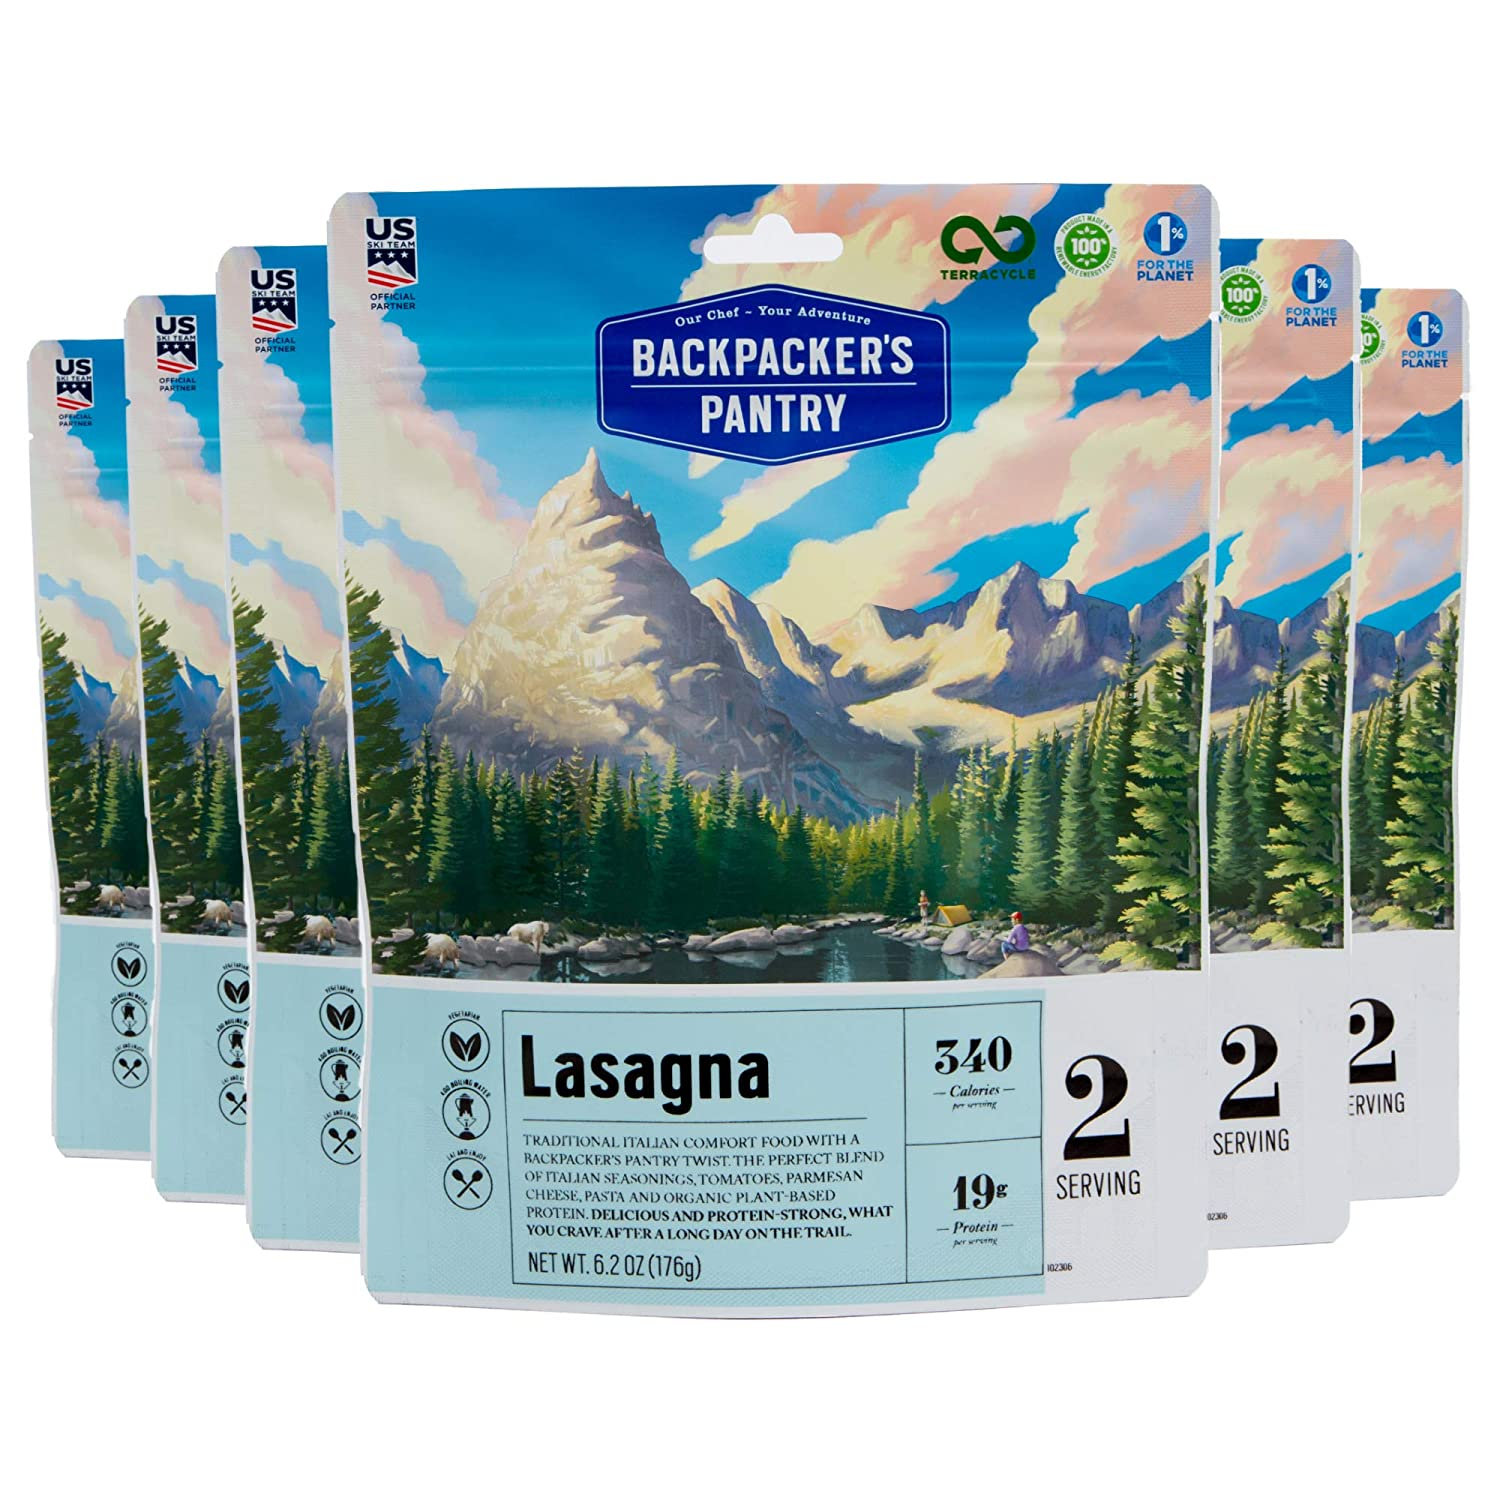 Backpacker's Pantry Lasagna, 2 Servings Per Pouch (6 Count), Freeze Dried Food, 19 Grams of Protein, Vegetarian